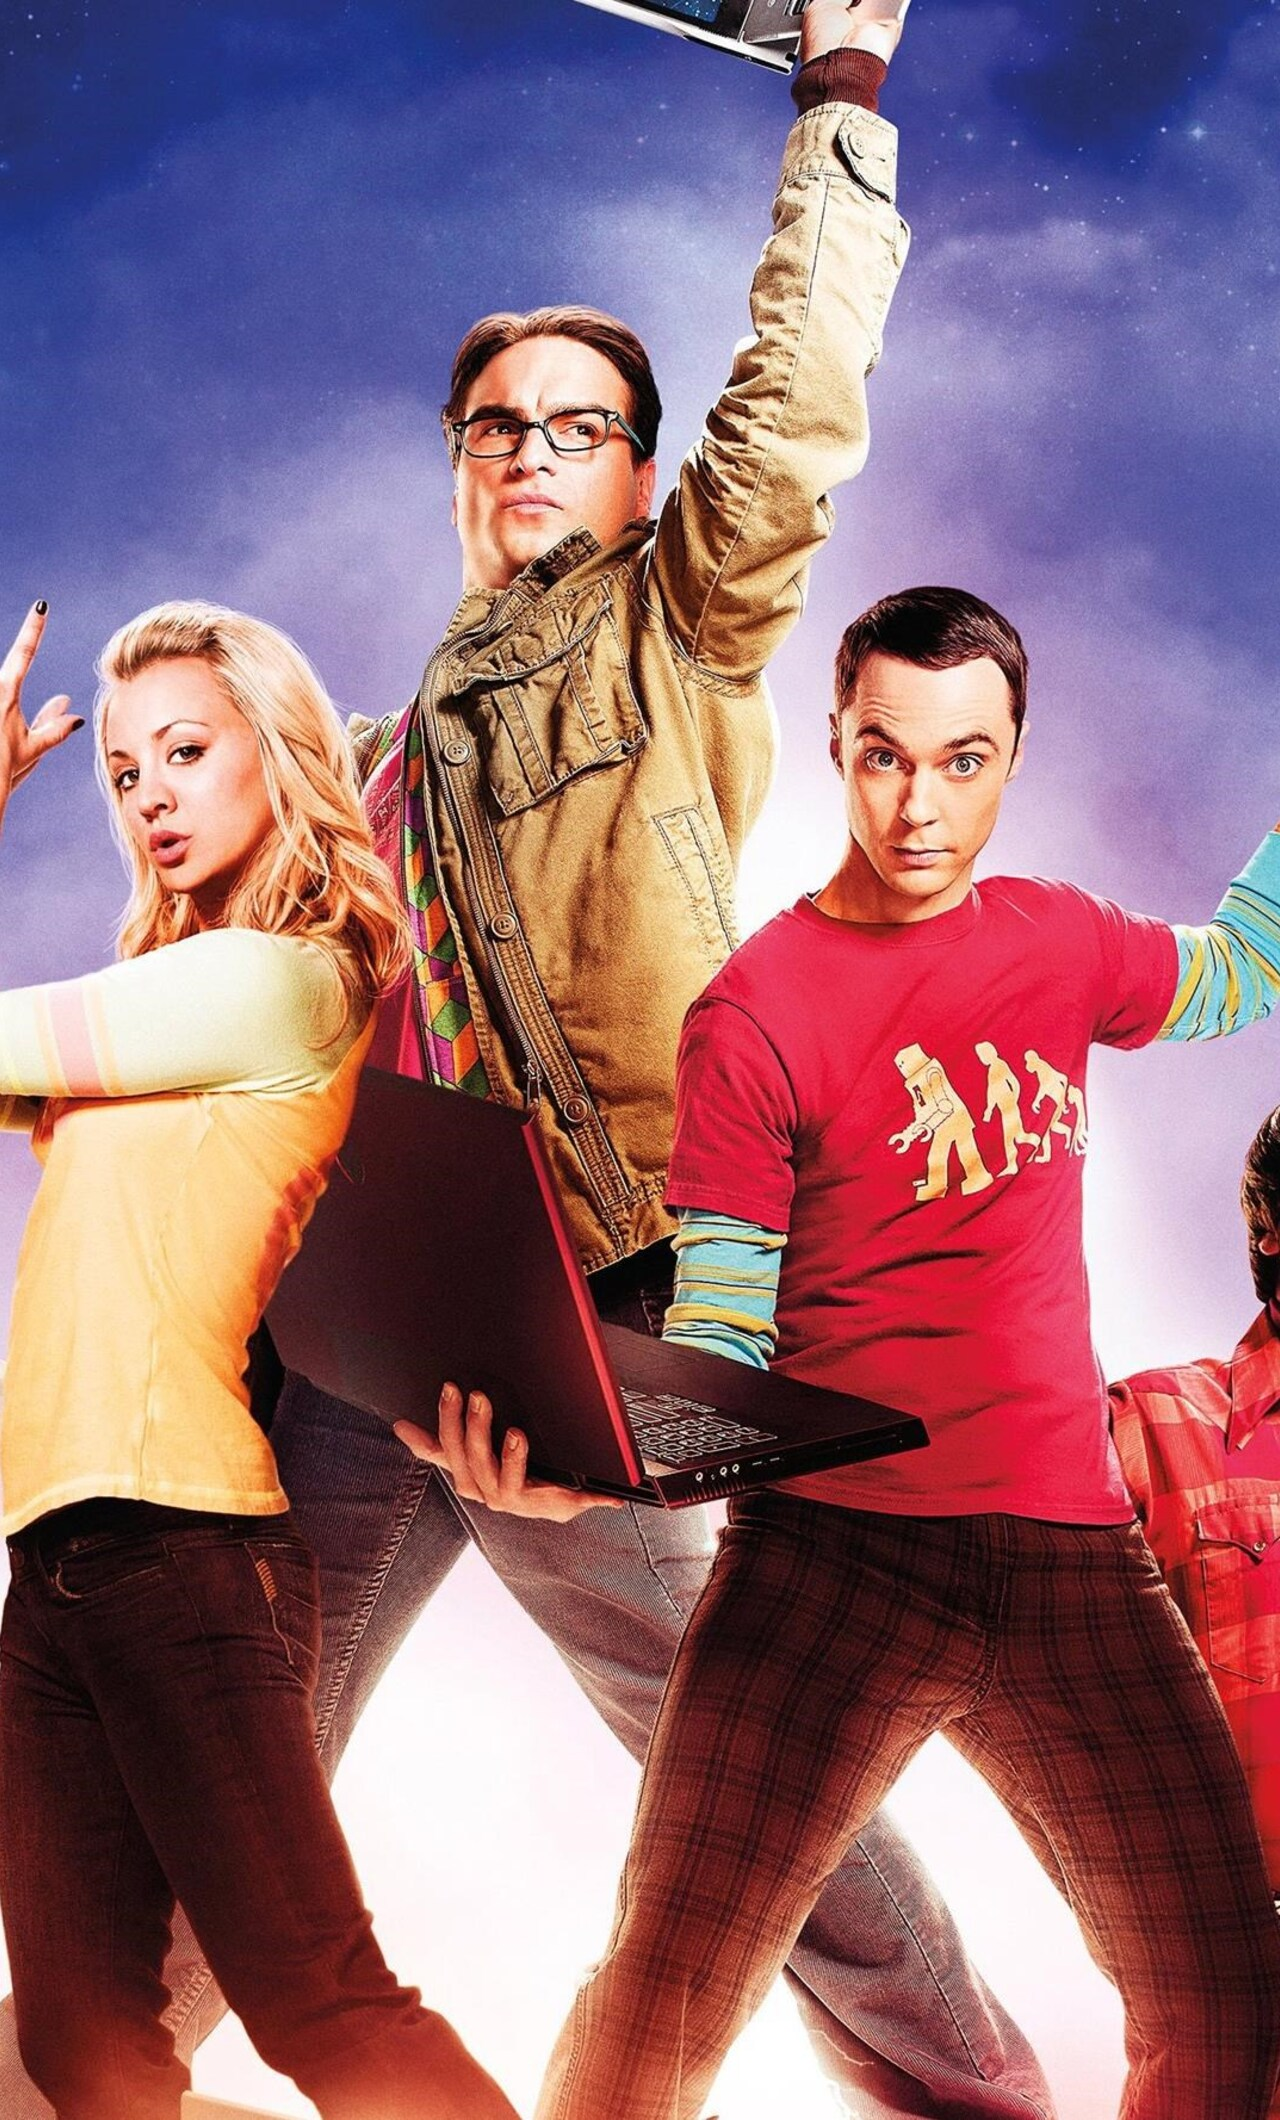 1280x2120 The Big Bang Theory 4 Iphone 6 Hd 4k Wallpapers Images